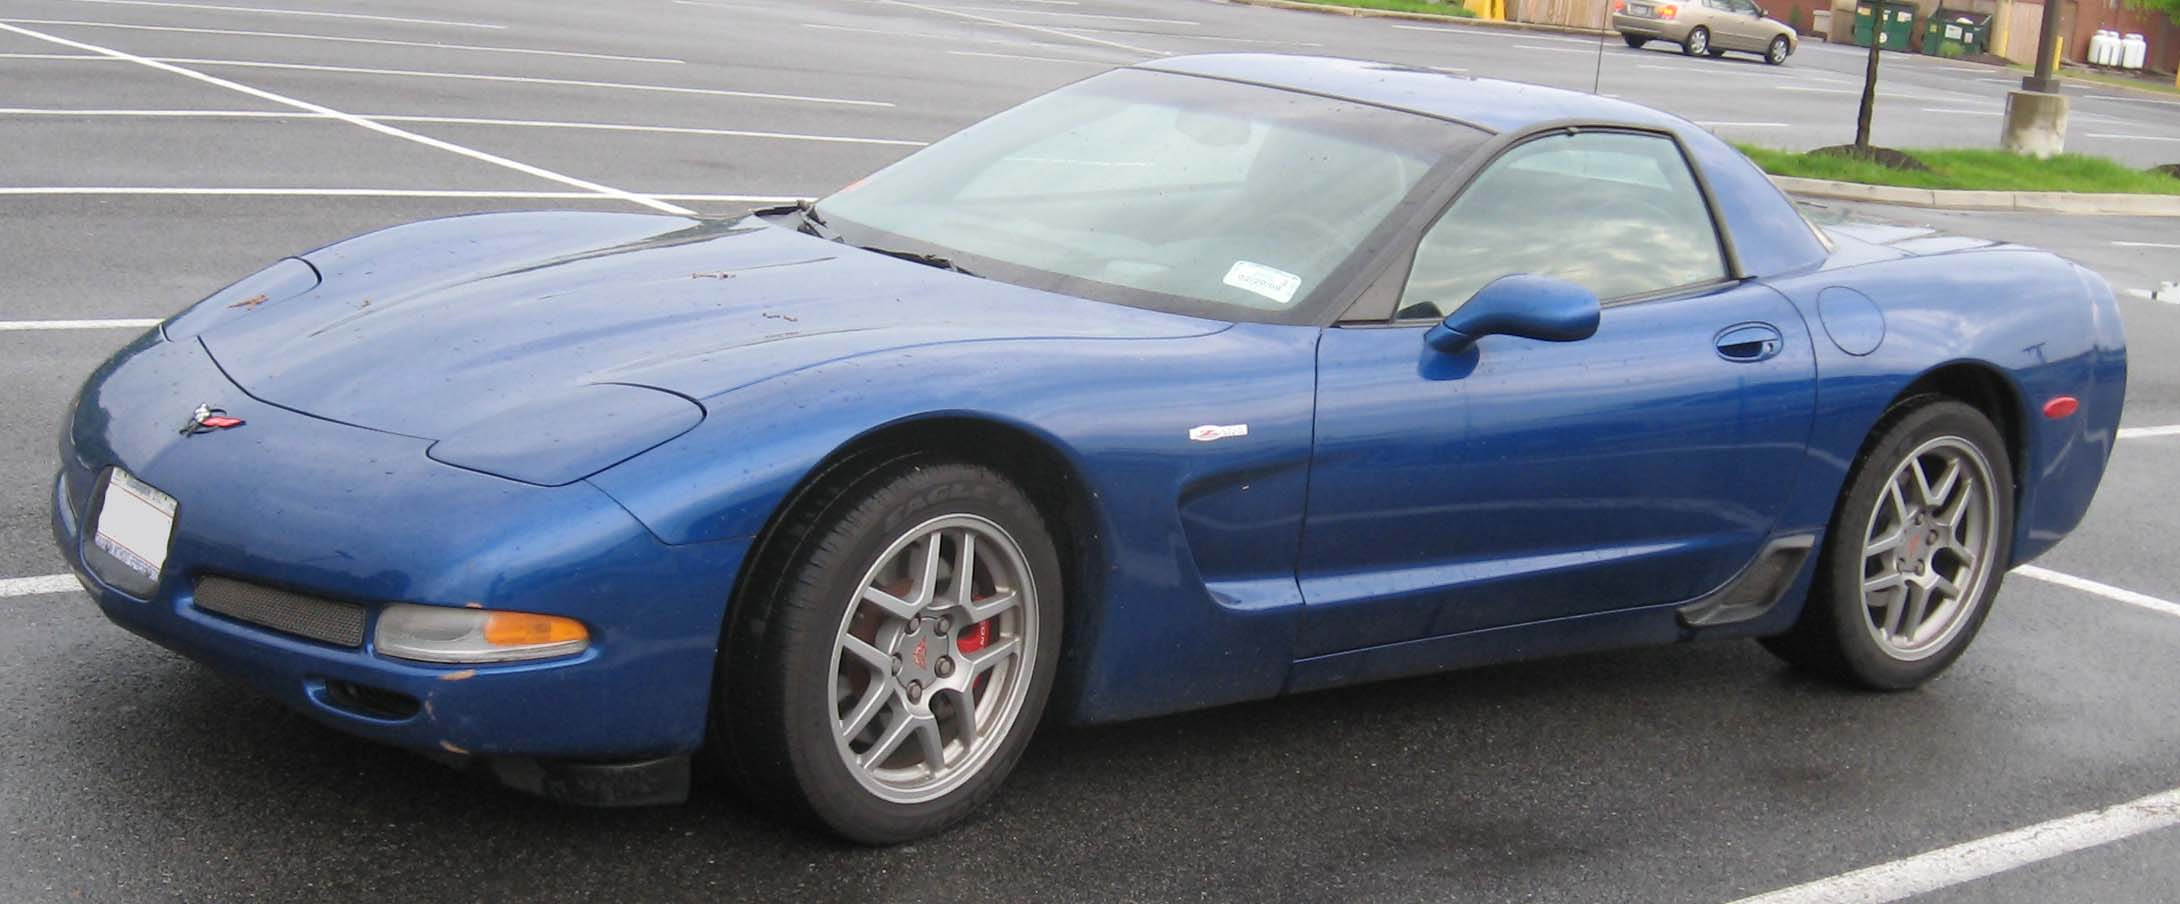 chevrolet corvette c5 coupe 2003 pictures